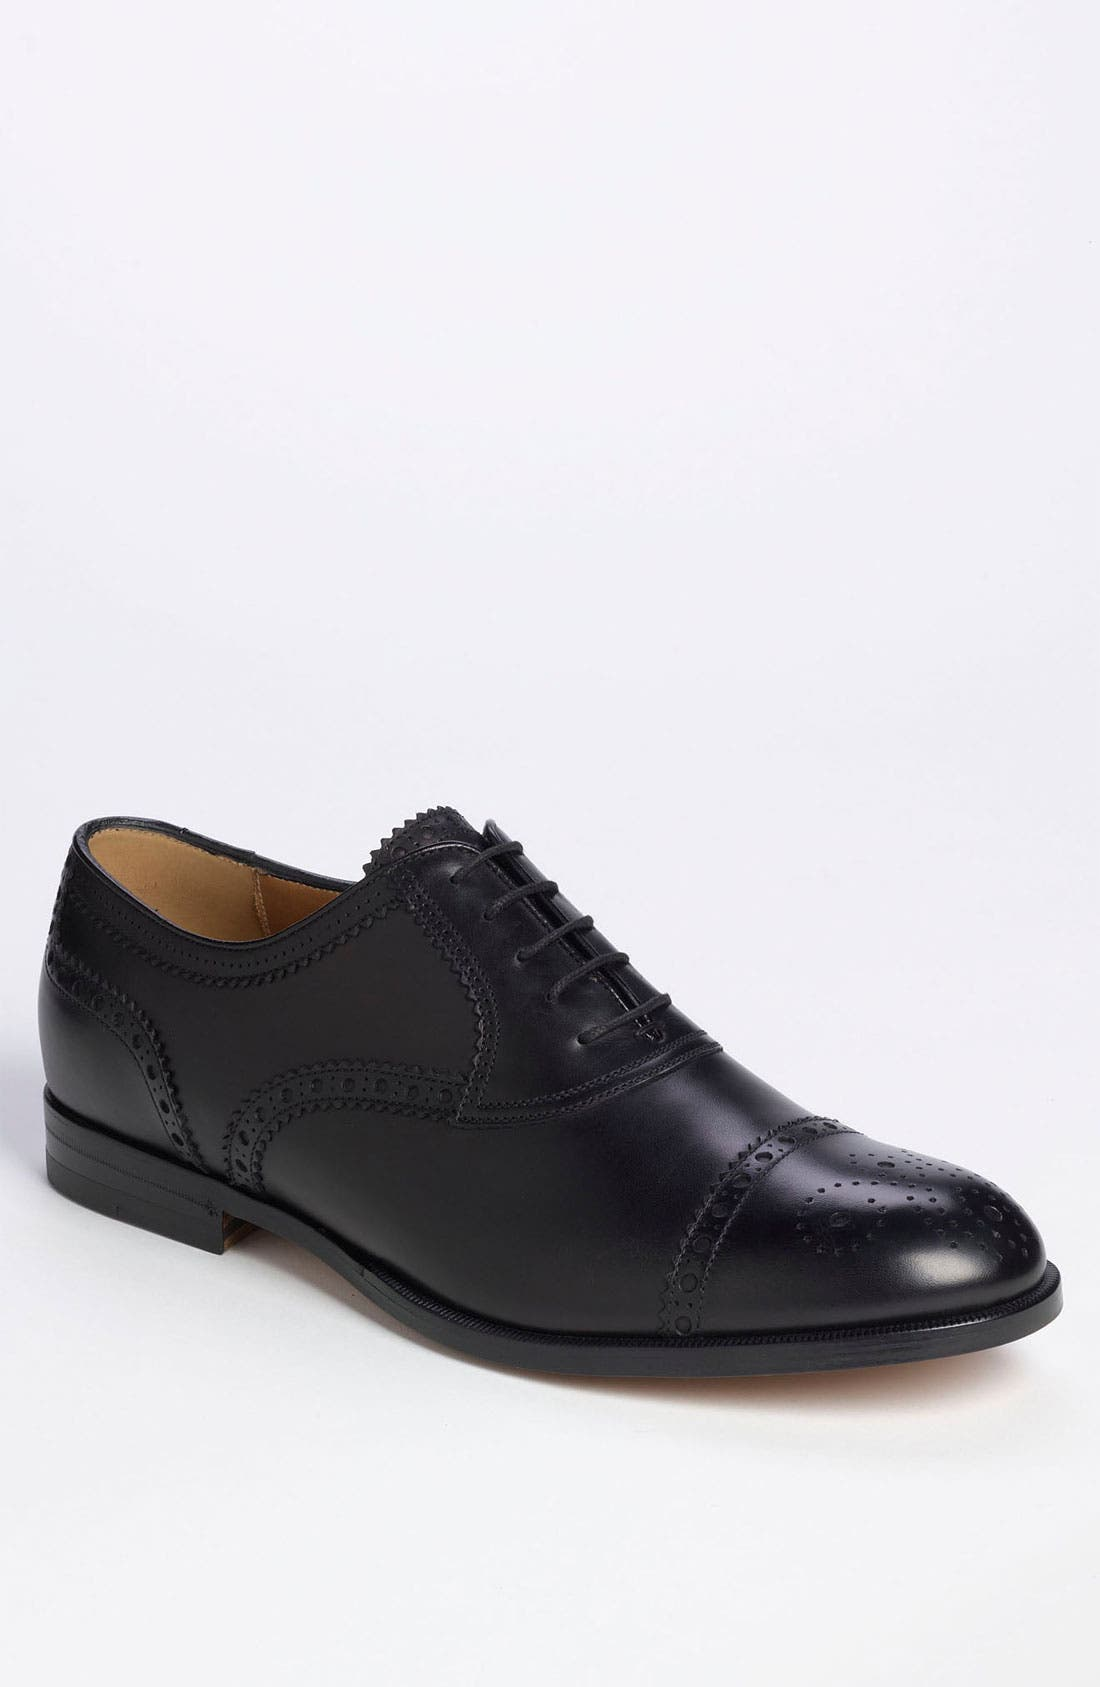 Main Image - Gucci 'Samo' Cap Toe Oxford